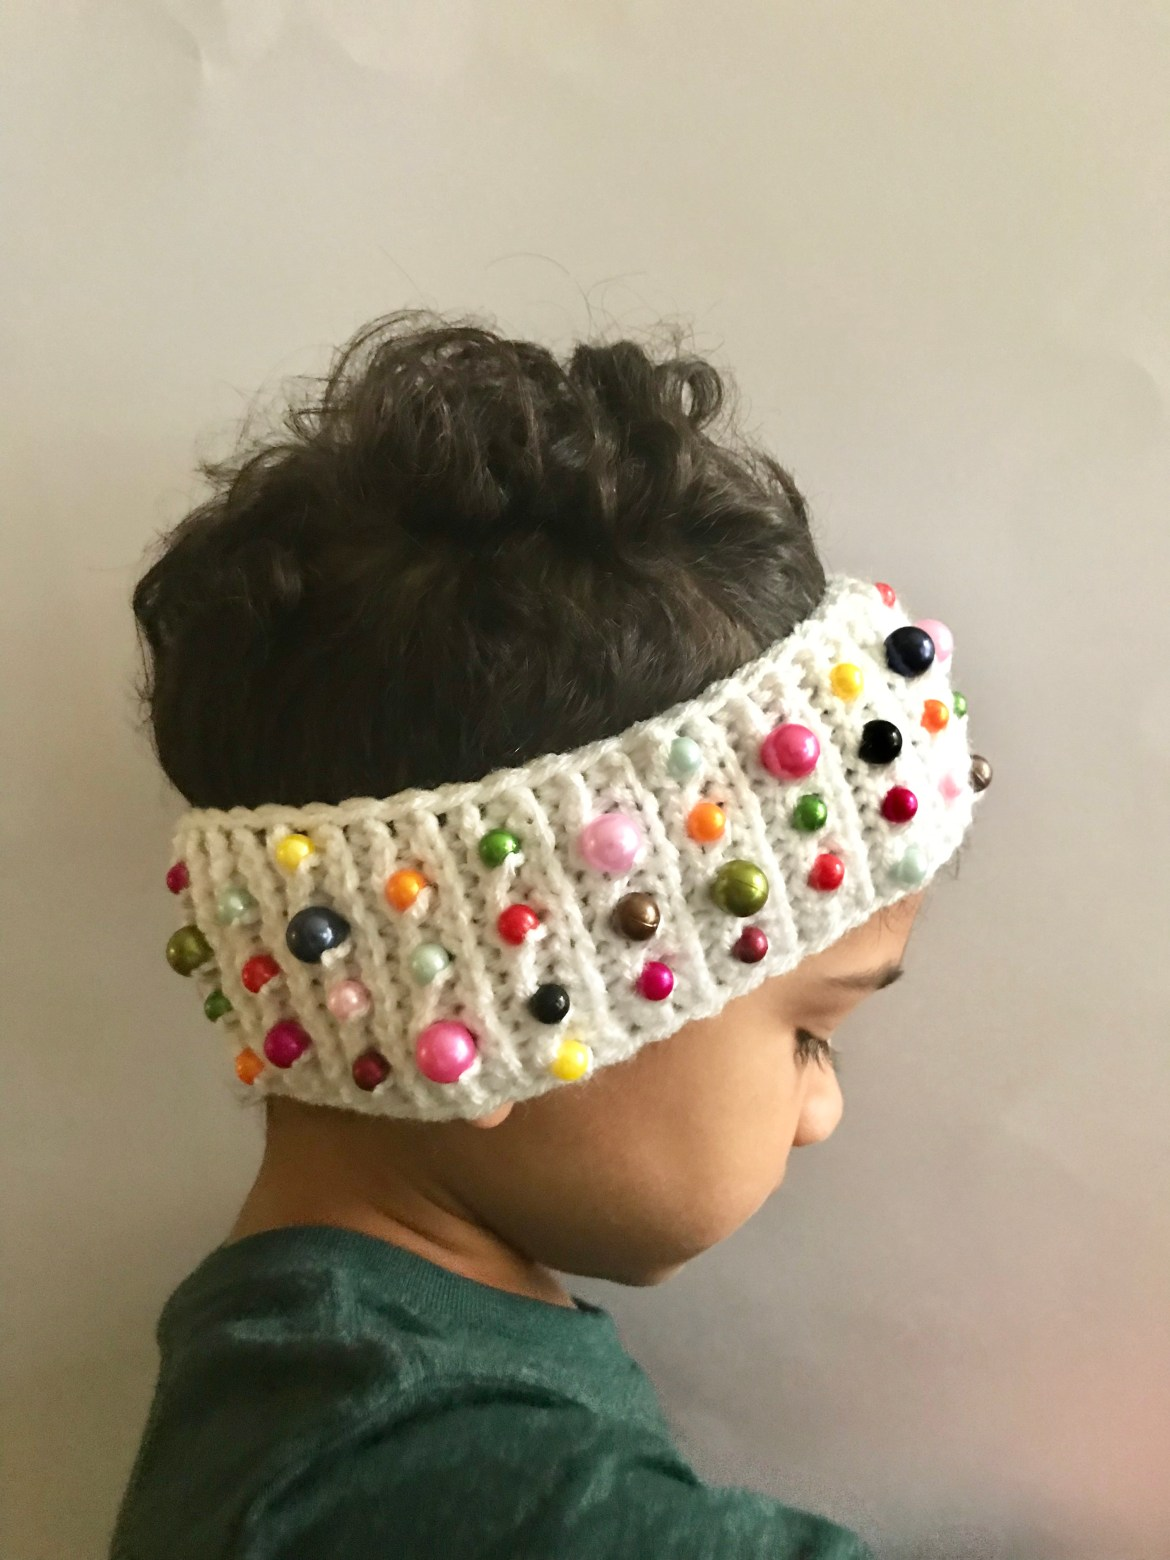 The Bauble Headband A Free Crochet Pattern Crafting For Weeks